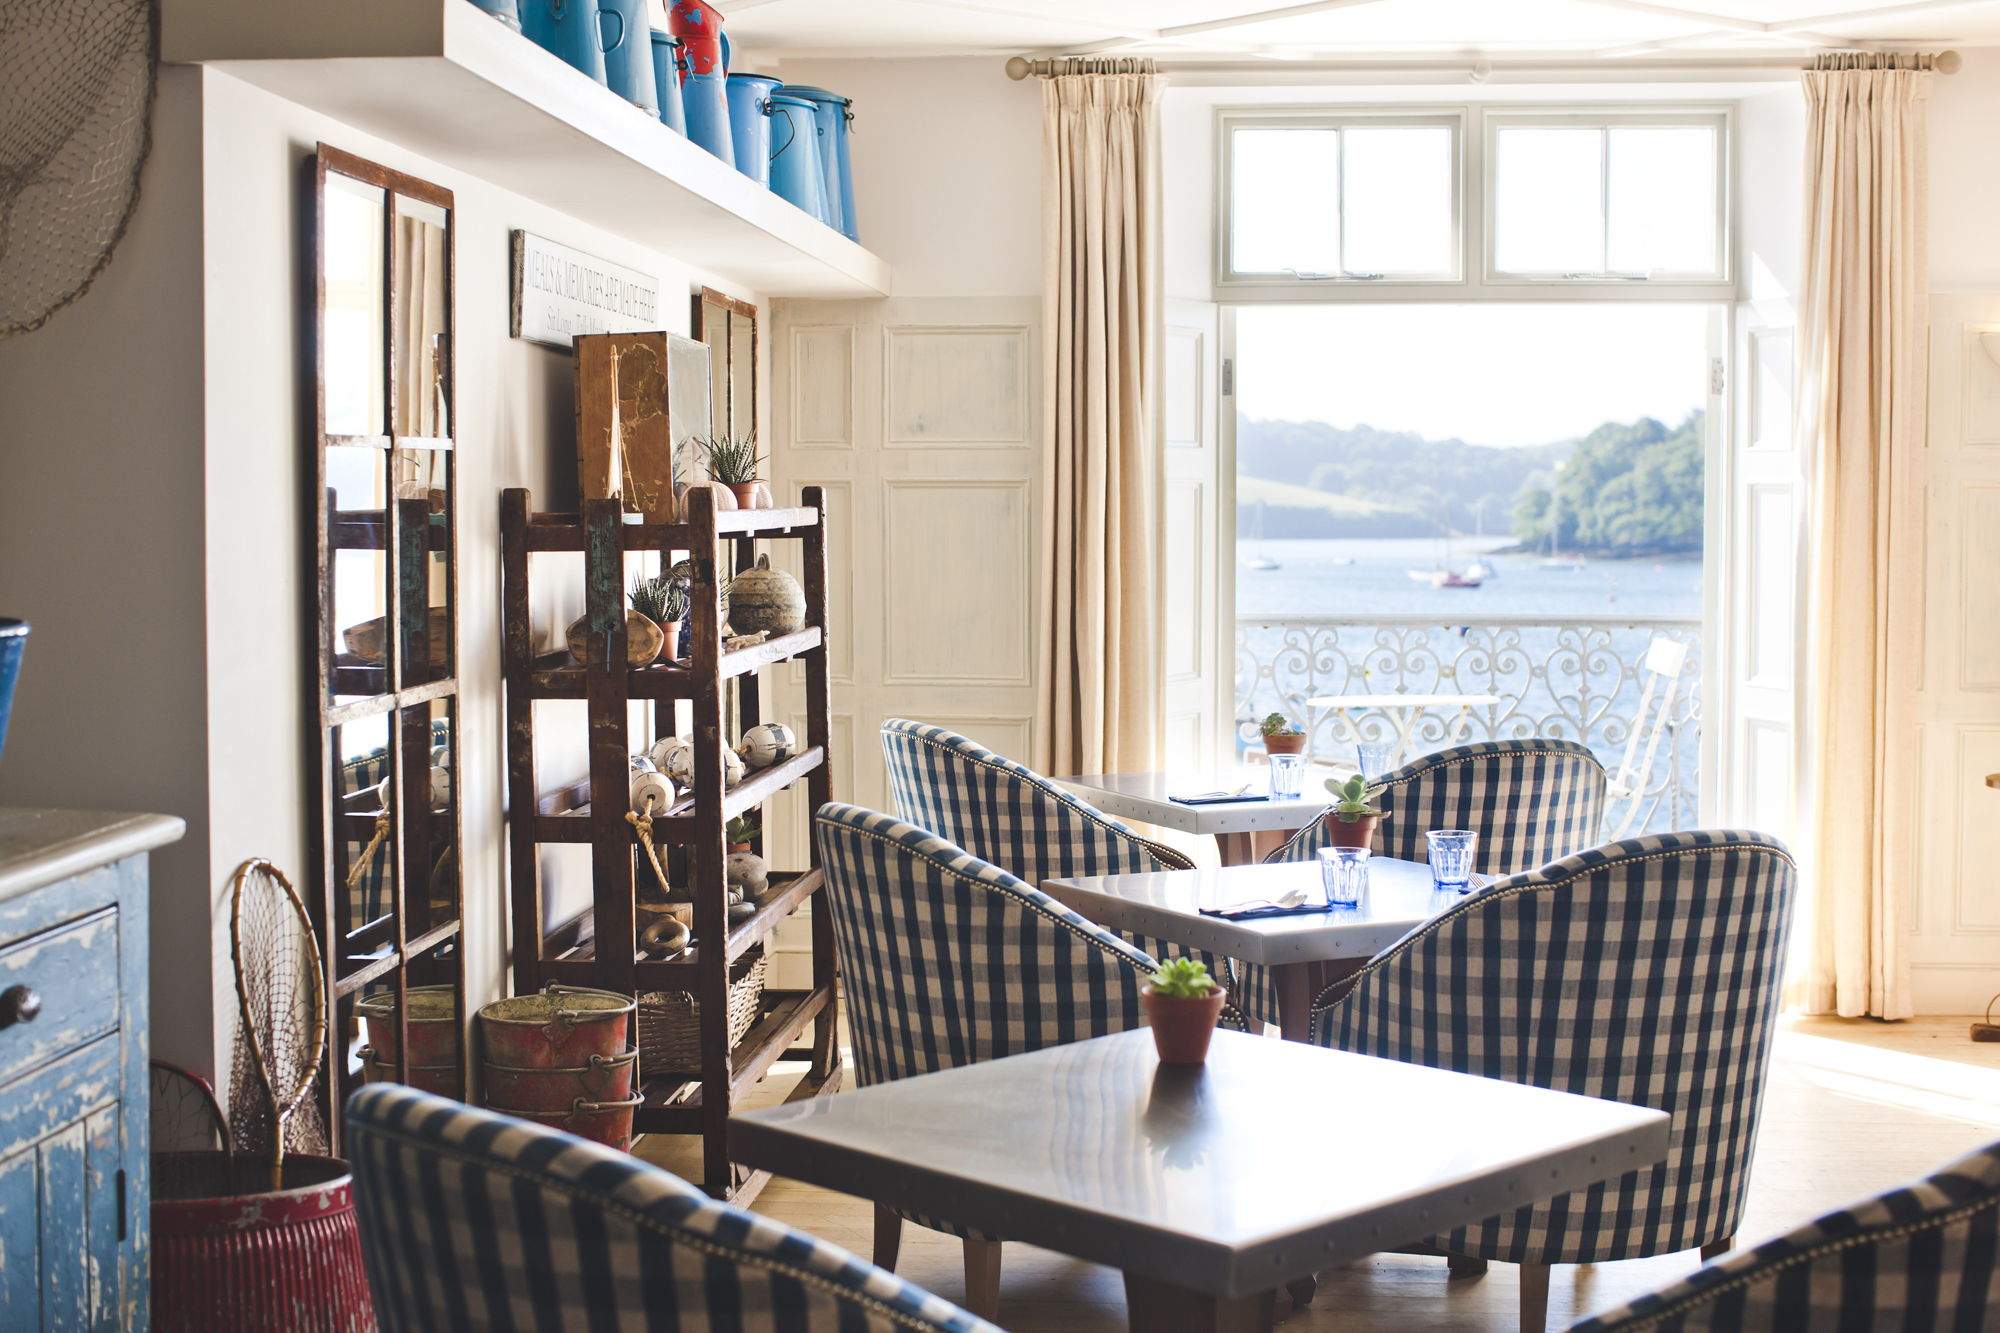 St Mawes Hotel cornwall southwest uk venues events hotels dining upper deck room with a view